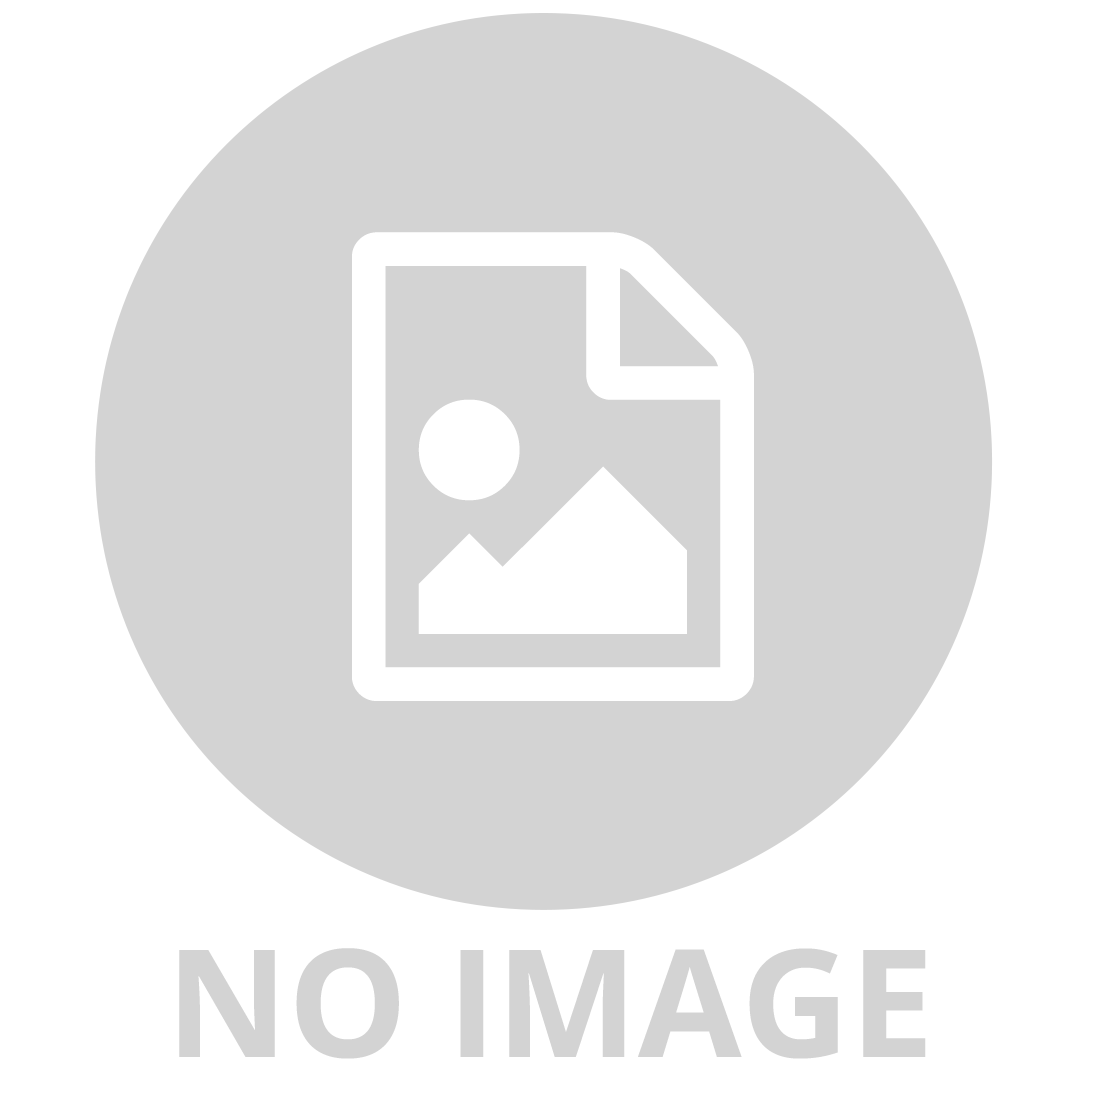 BRUDER 1:16 SCALE SCANIA R-SERIES CATTLE TRANSPORTATION TRUCK